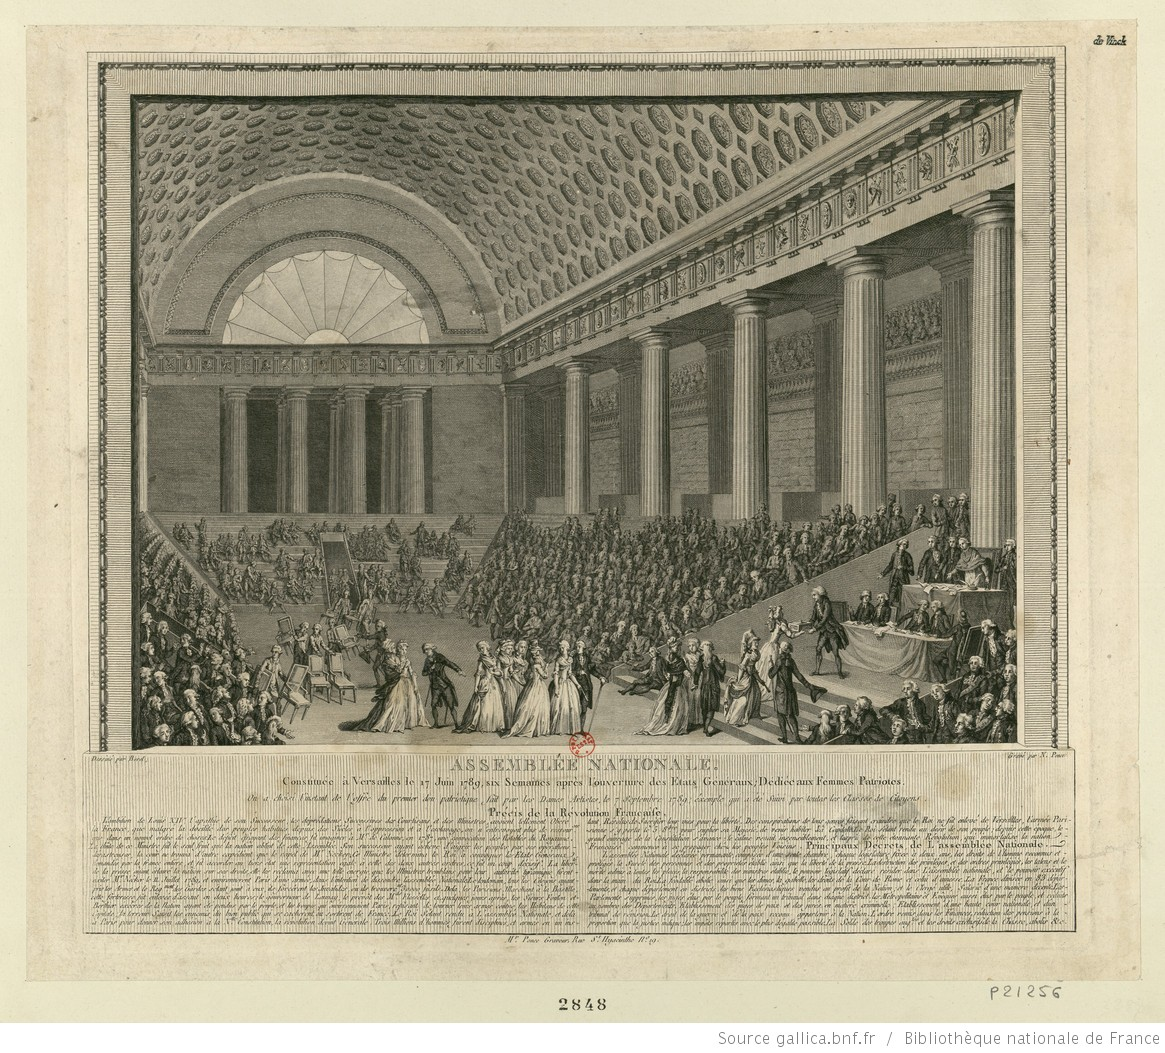 Engraving of the National Assembly gathered in a large room at Versailles.